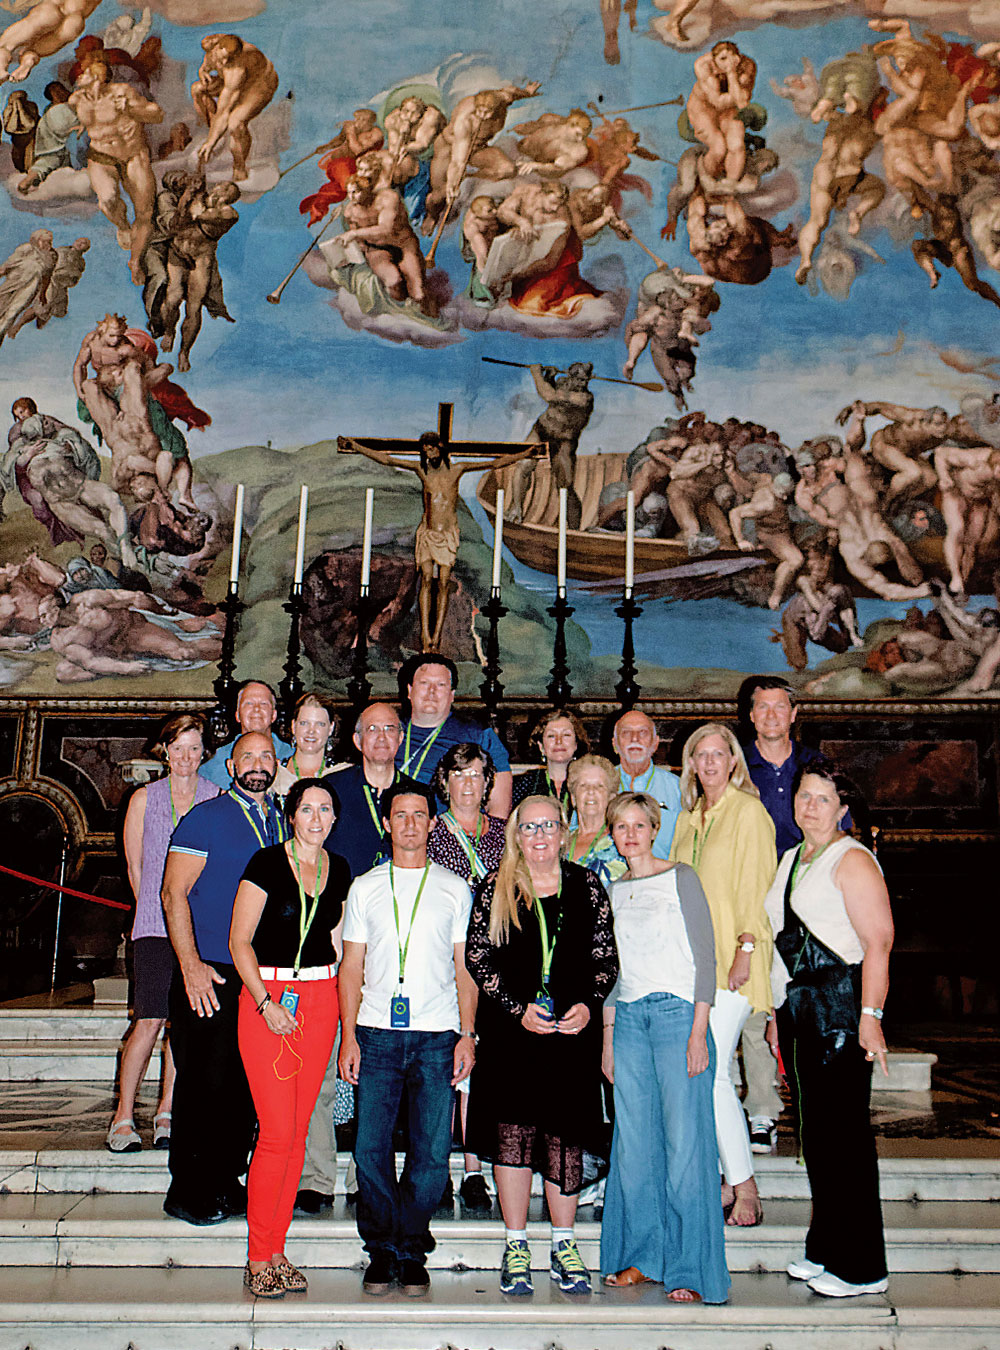 Cross Catholic Outreach pilgrims at the Sistine Chapel